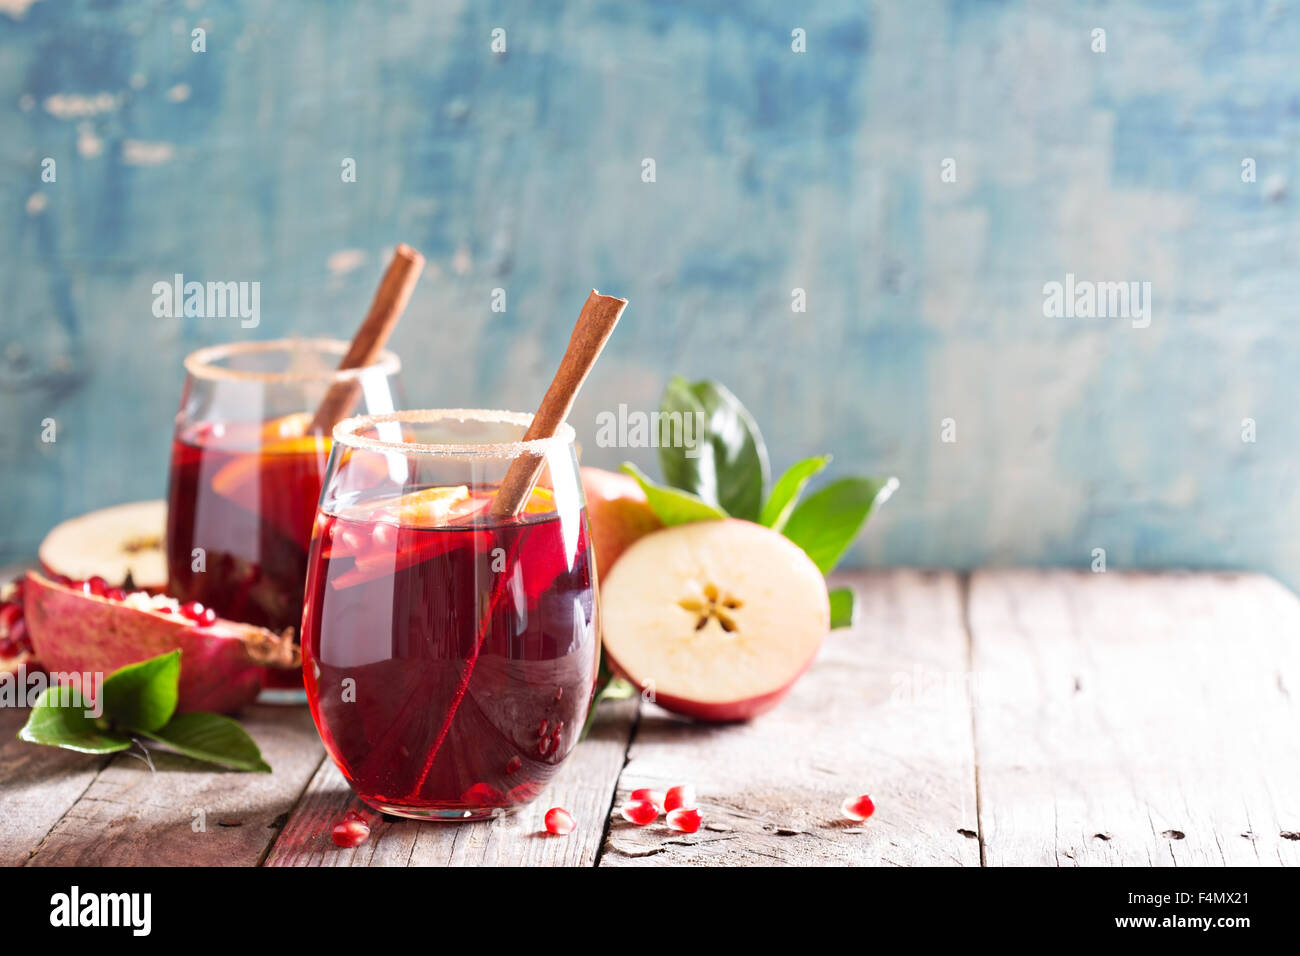 Fall and winter sangria with apples, oranges, pomegranate and cinnamon - Stock Image